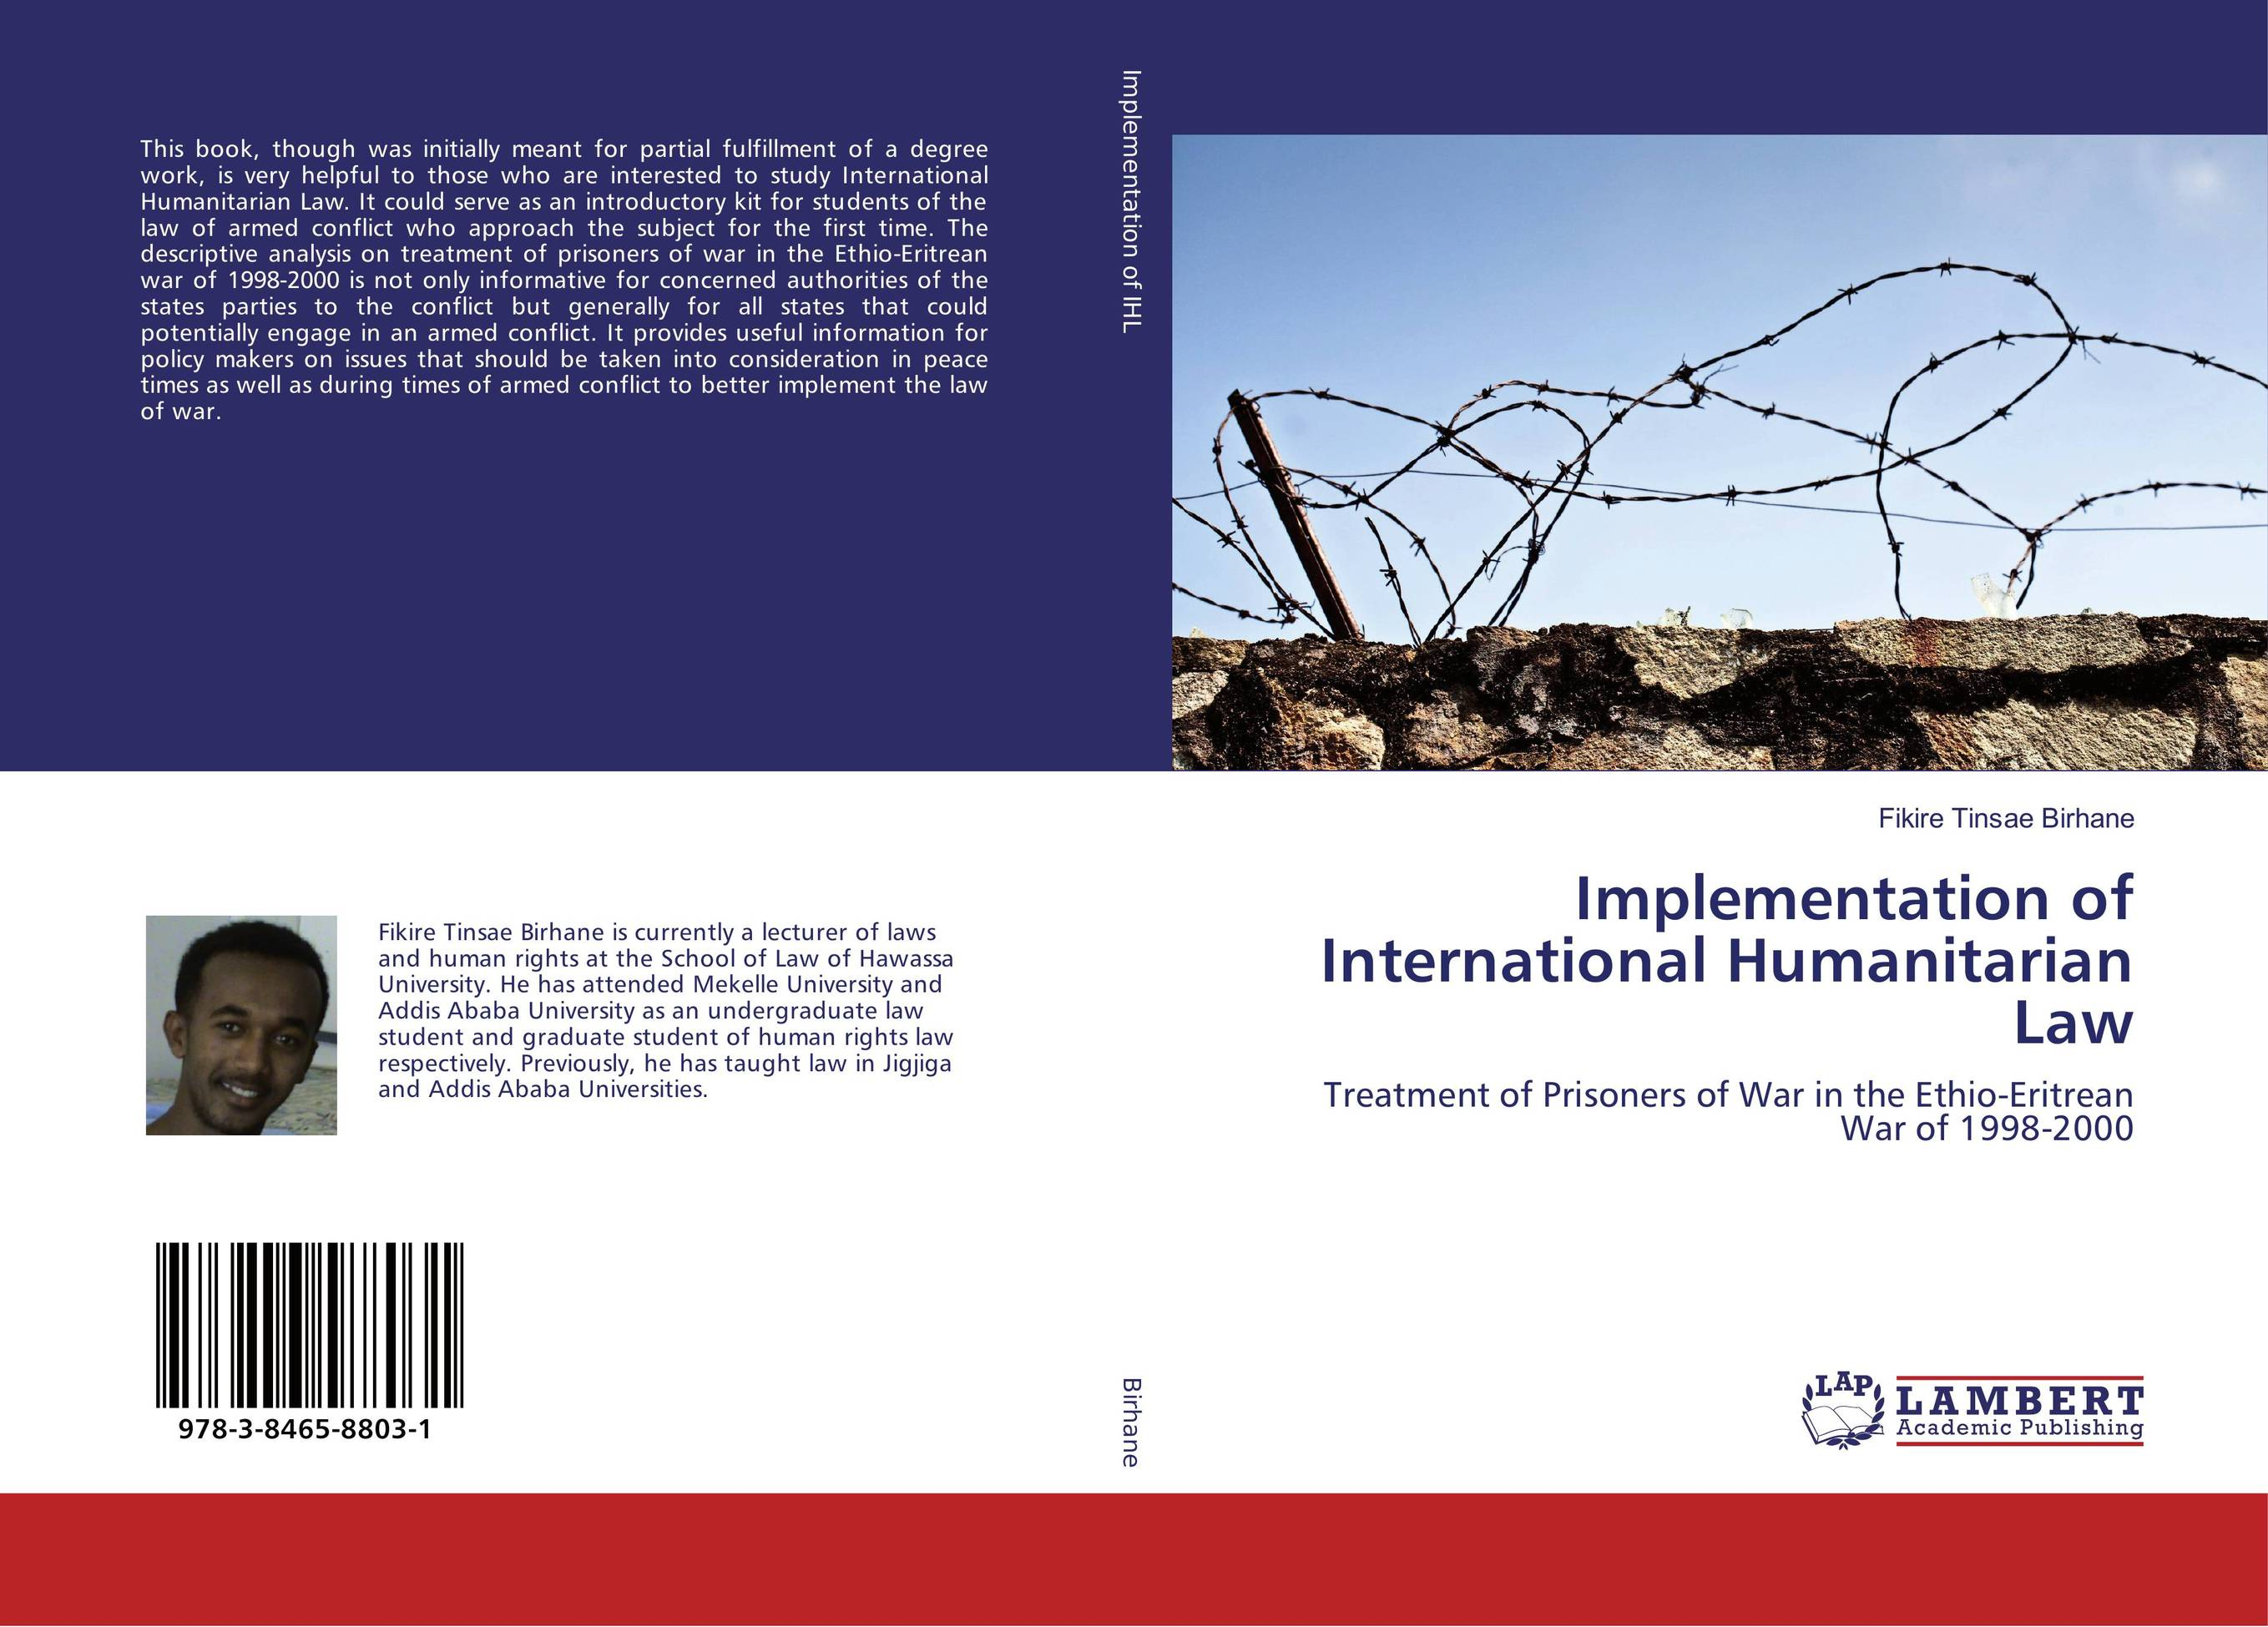 Implementation of International Humanitarian Law купить